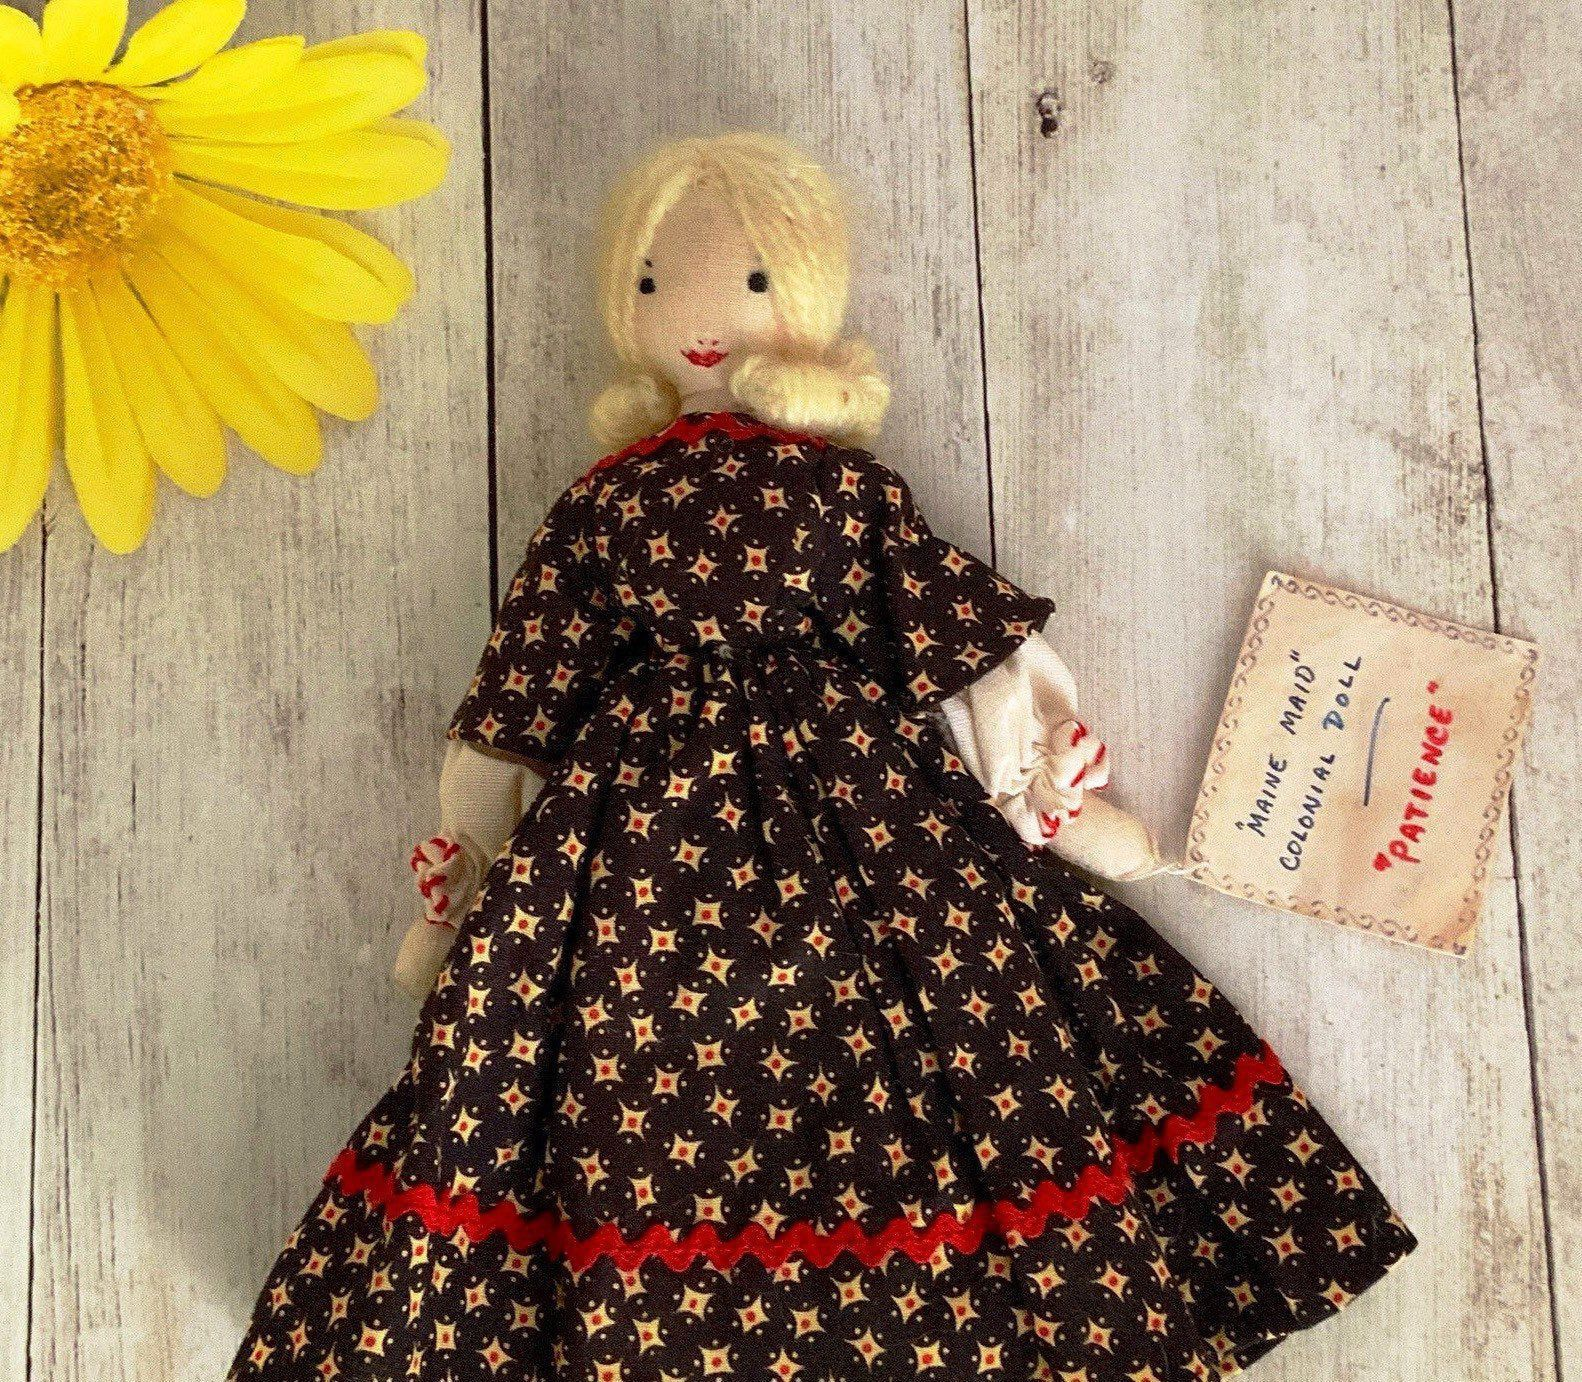 Vintage Colonial Handmade Doll, Rag Doll, Stuffed Cloth Doll #colonialdolldresses Vintage Colonial Handmade Doll, Rag Doll, Stuffed Cloth Doll #colonialdolldresses Vintage Colonial Handmade Doll, Rag Doll, Stuffed Cloth Doll #colonialdolldresses Vintage Colonial Handmade Doll, Rag Doll, Stuffed Cloth Doll #colonialdolldresses